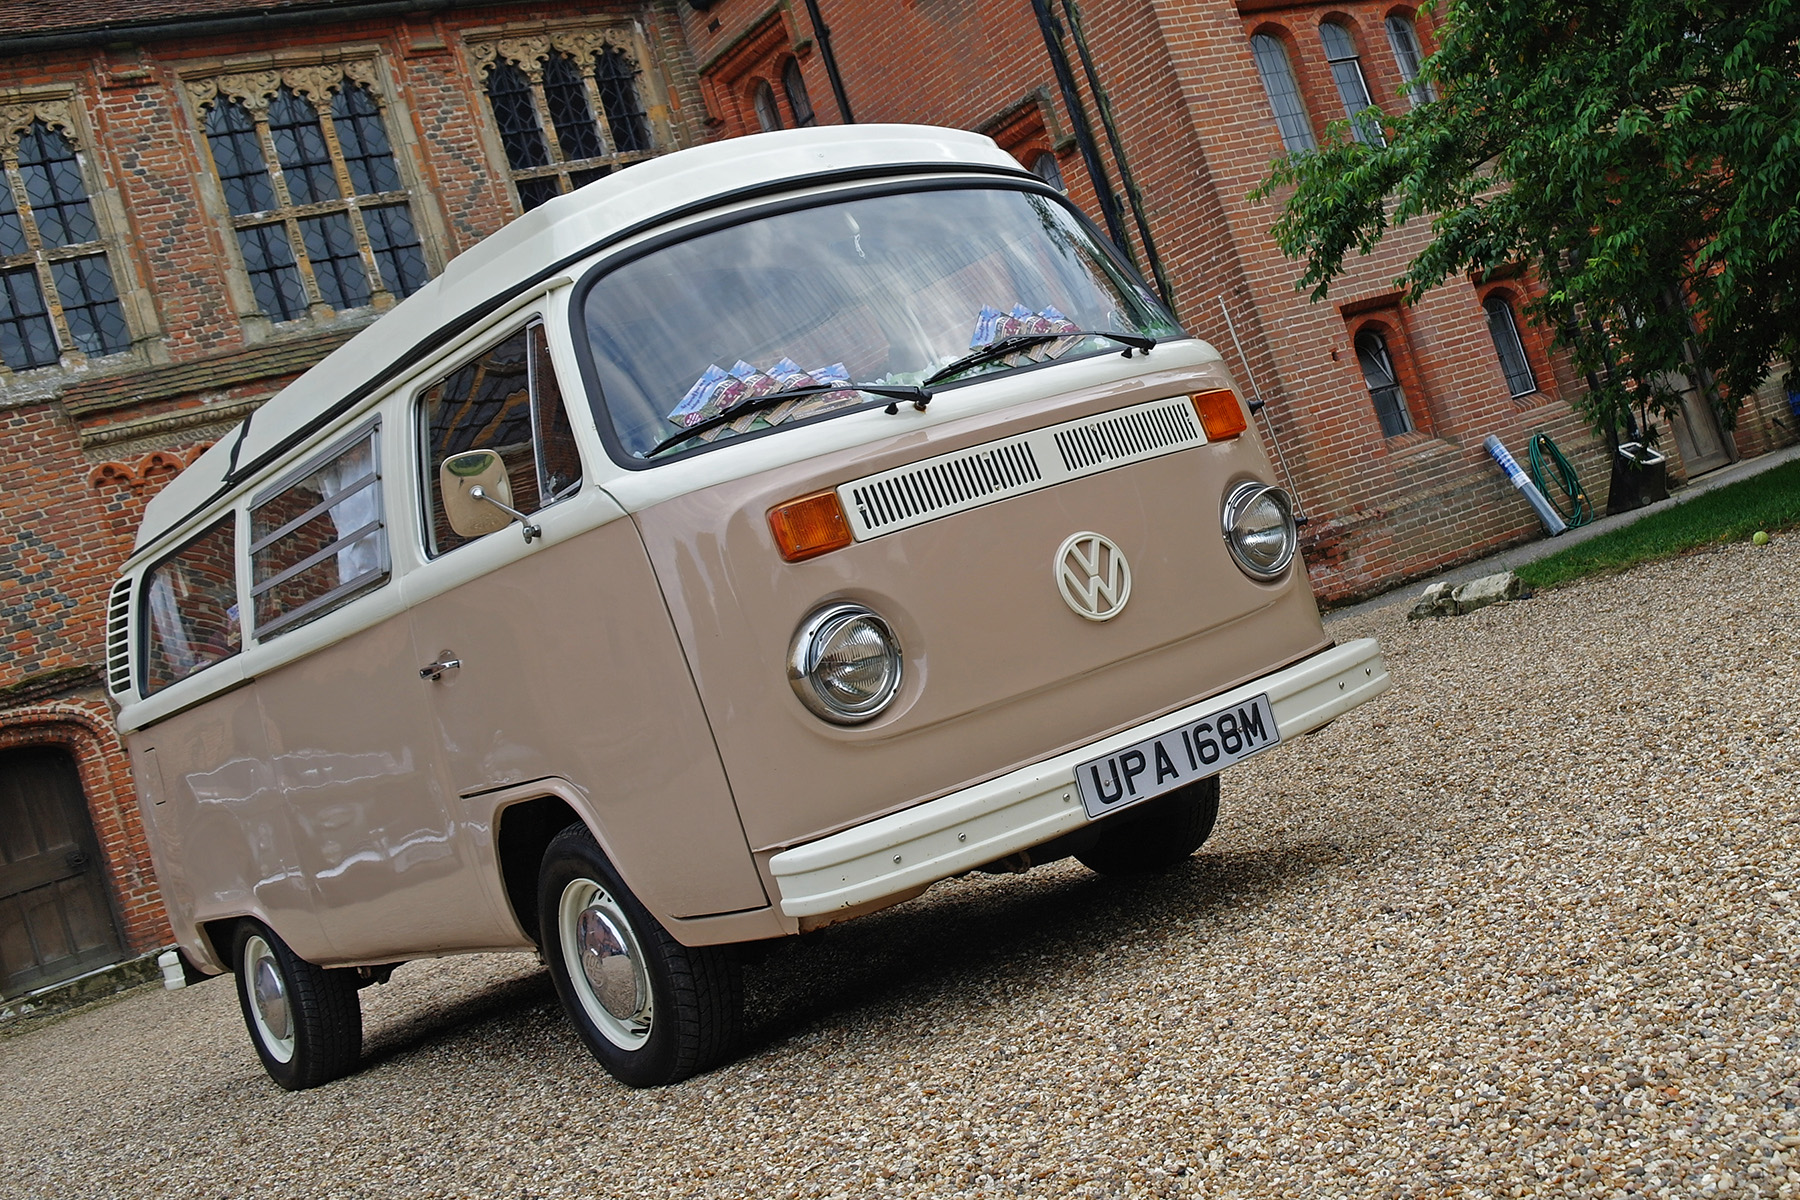 Retro Road Test: Volkswagen Type 2 camper